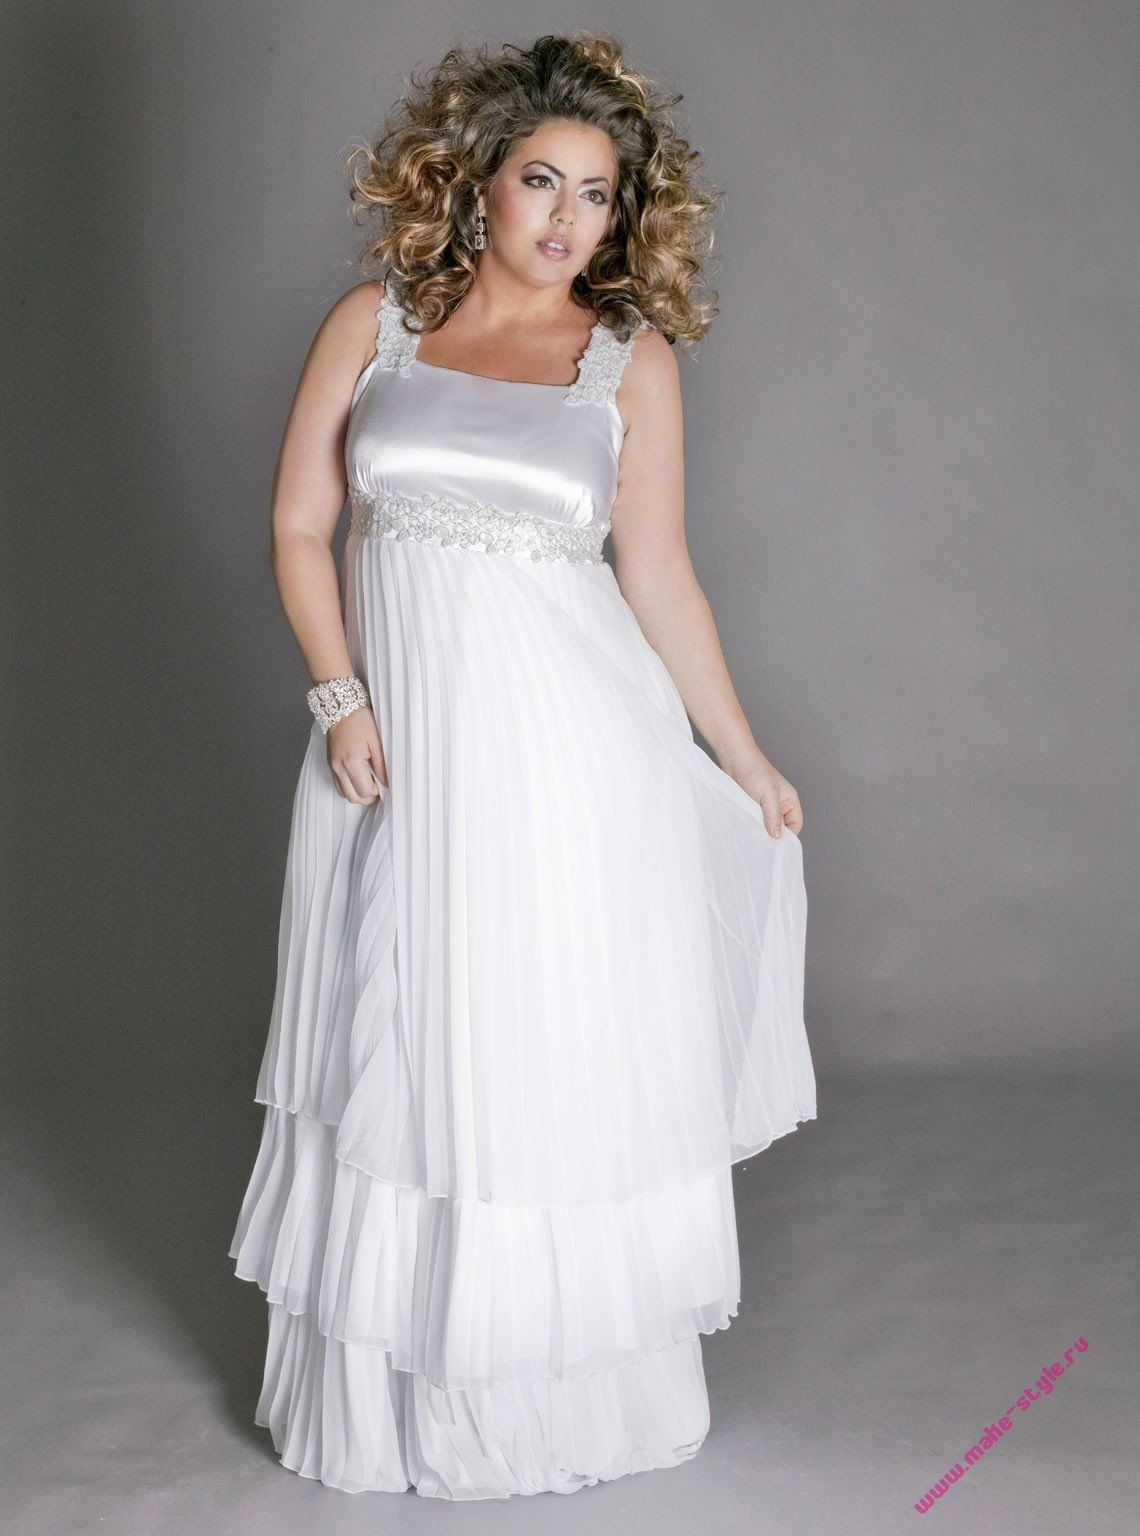 a022c17bef4 New Wedding Dresses for Heavy Set Woman Check more at http   svesty.com  wedding-dresses-for-heavy-set-woman